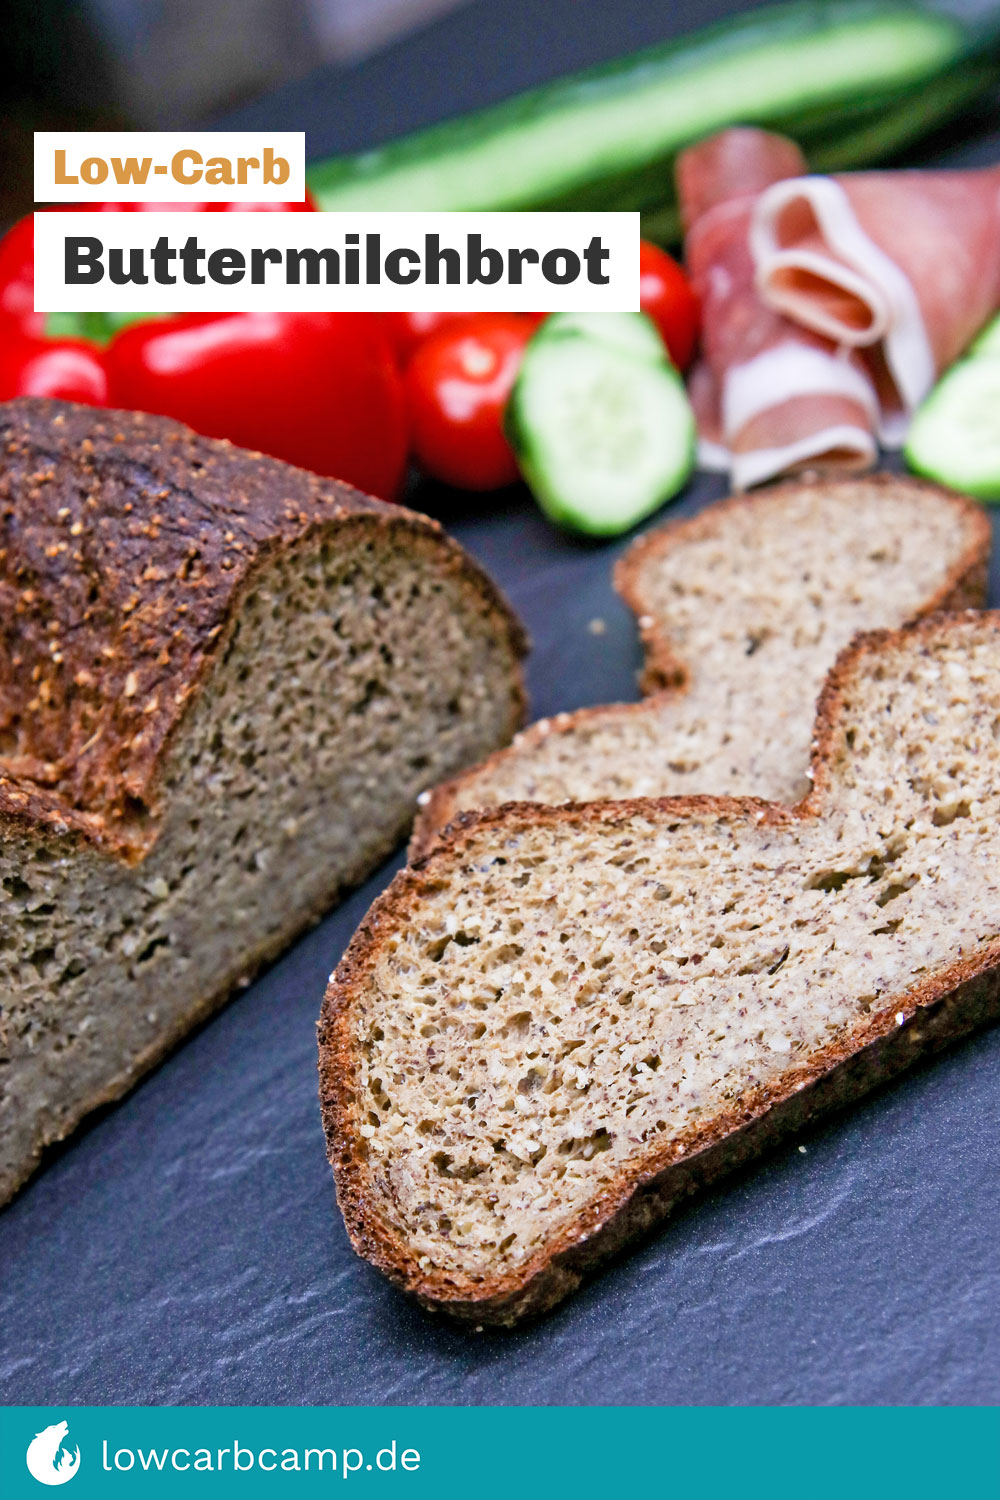 Buttermilchbrot Low-Carb